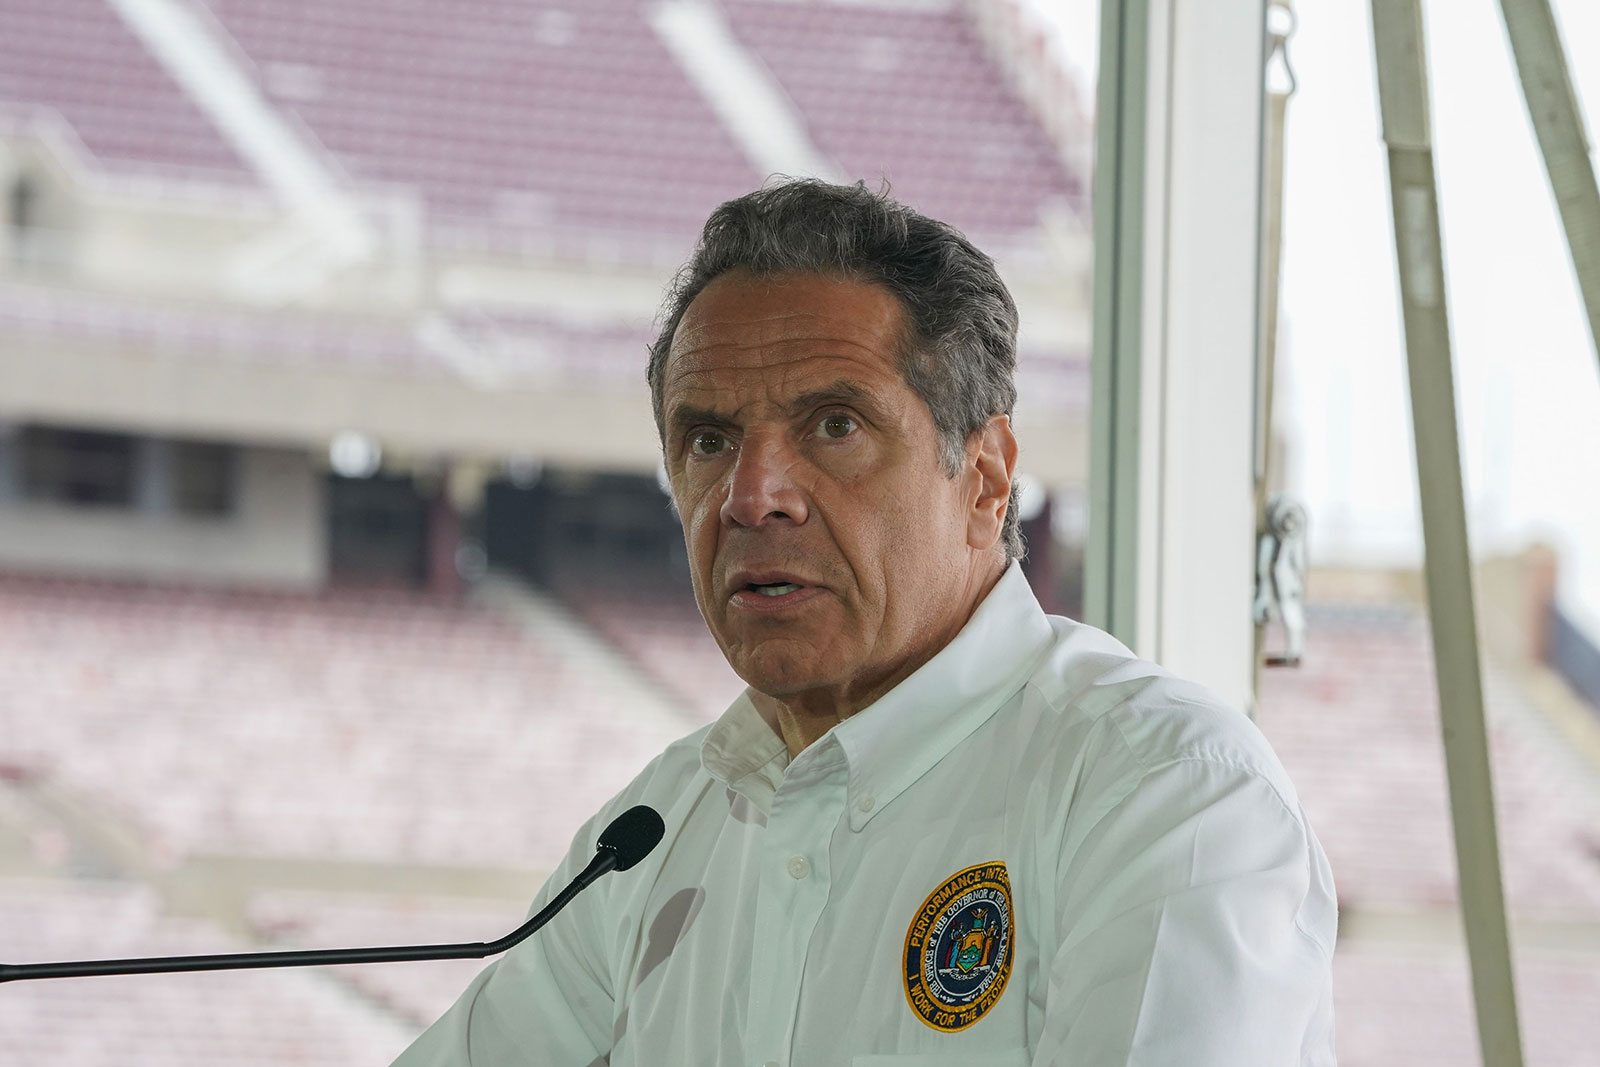 New York Governor Andrew Cuomo speaks at a press conference at the Theater at Jones Beach in Long Island on May 24. Cuomo's office criticized Dublin Deck Tiki Bar and Grill for allegedly easing restrictions on masks and social distancing for its customers because of rainy weather on Friday.